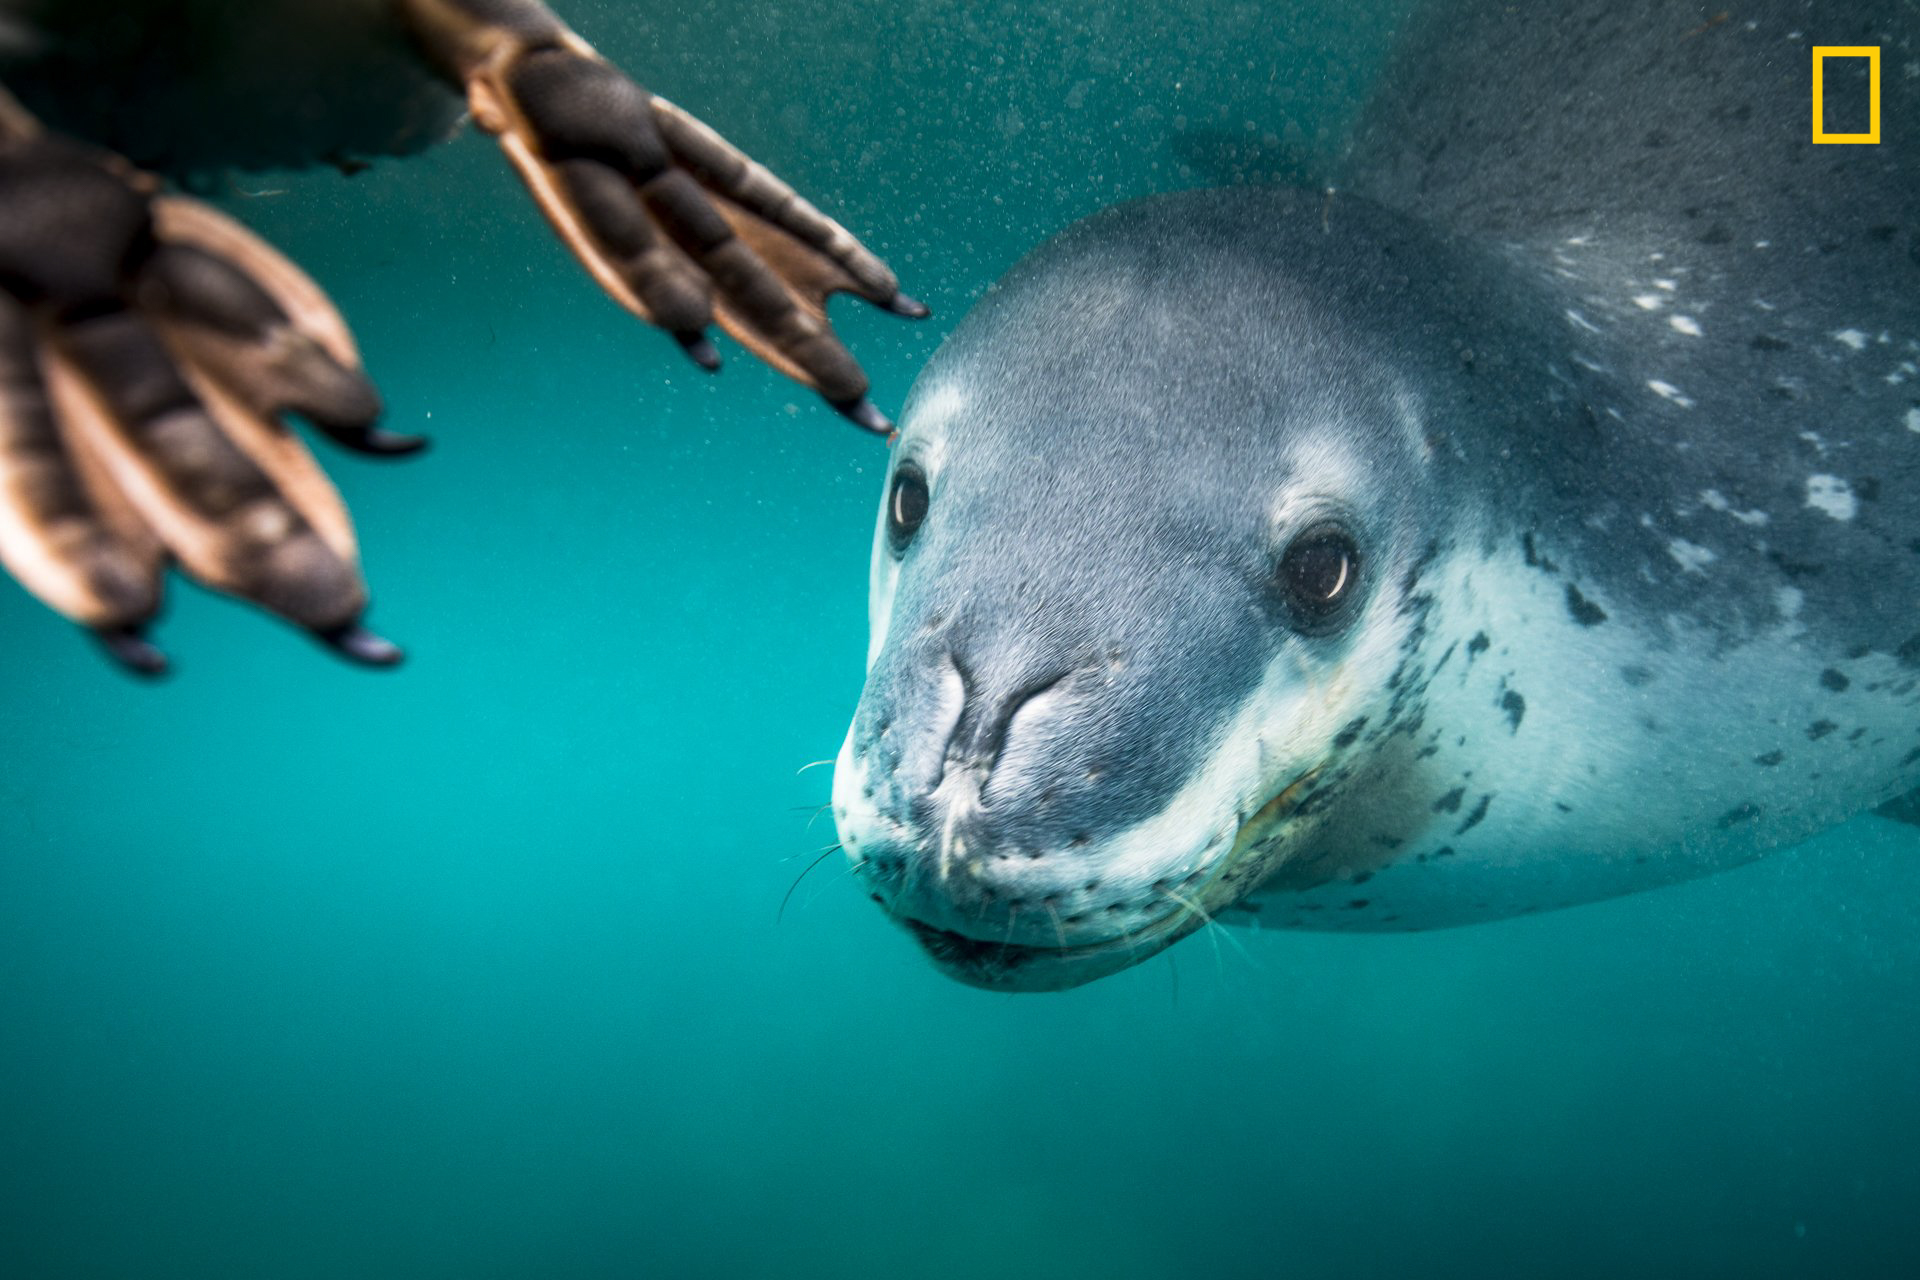 PHOTO AND CAPTION BYRITA KLUGE/ 2019 NATIONAL GEOGRAPHIC TRAVEL PHOTO CONTESTOn my last day in Antarctica, I was posting my last video update, I heard what I was waiting for and documented what was to come. A leopard seal was feeding on a penguin ... Iwas in a 7mm free-diving suit to be more flexible to change positions quickly. A normal encounter would be 20 minutes or so and I wouldn't be too cold afterwards, but this day was different, as we swam with three different leopard seals—brrrr. I felt safebeing so close to the action with my team. Just amazing.